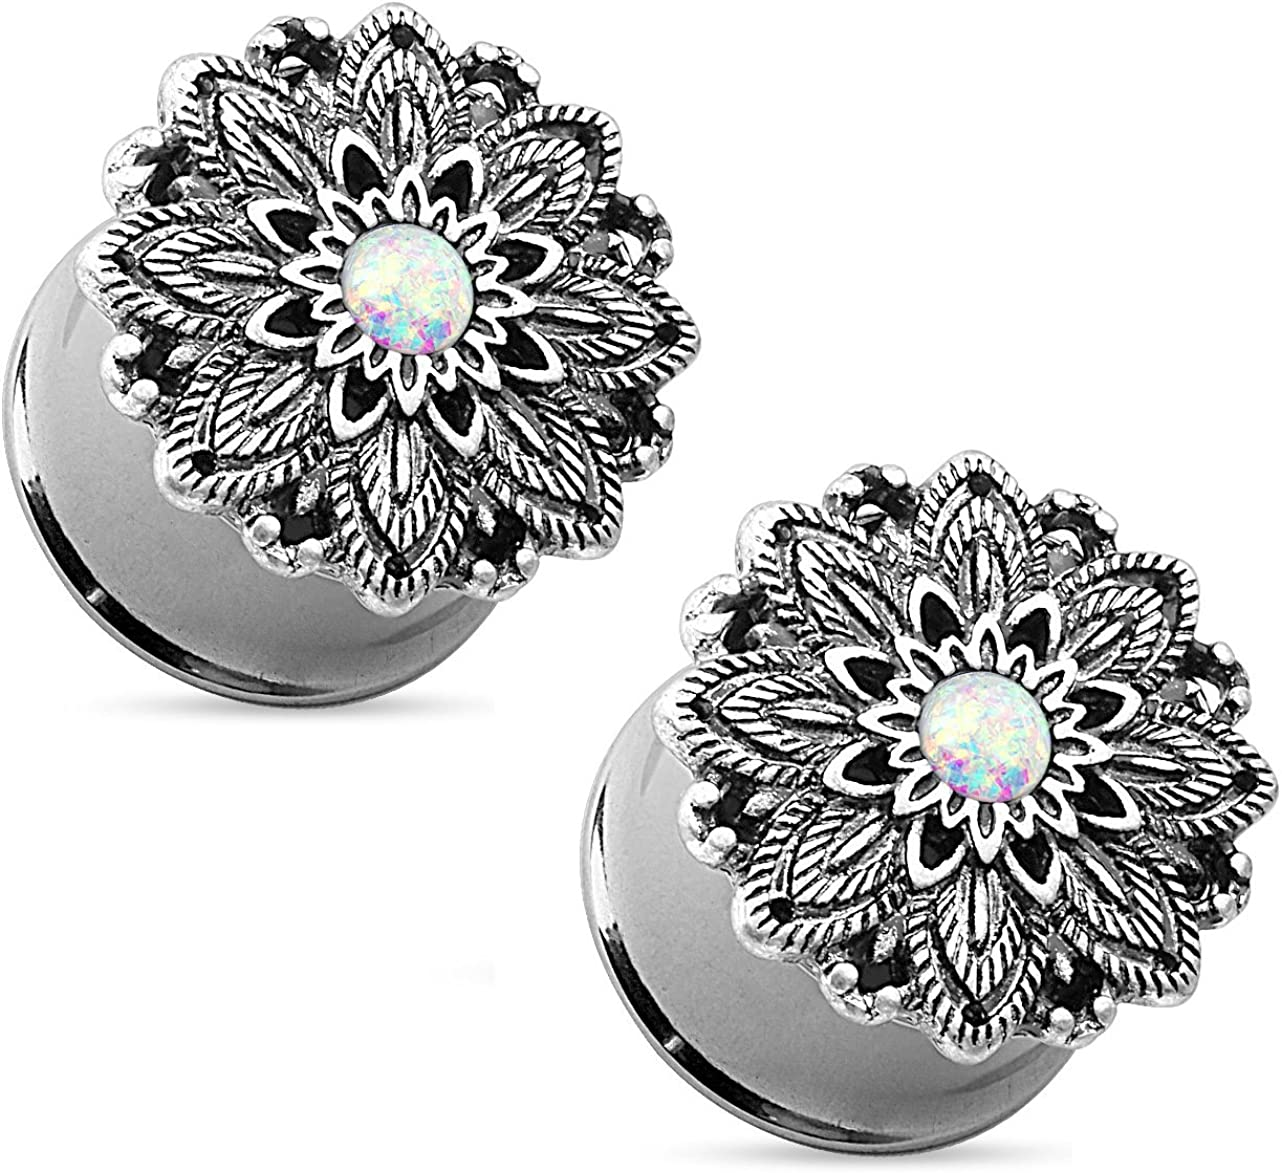 Pair of Opal Centered Antique Silver Plated Lotus Flower Top Double Flared Tunnels Ear Plug Gauges Piercings - 7 Sizes Available